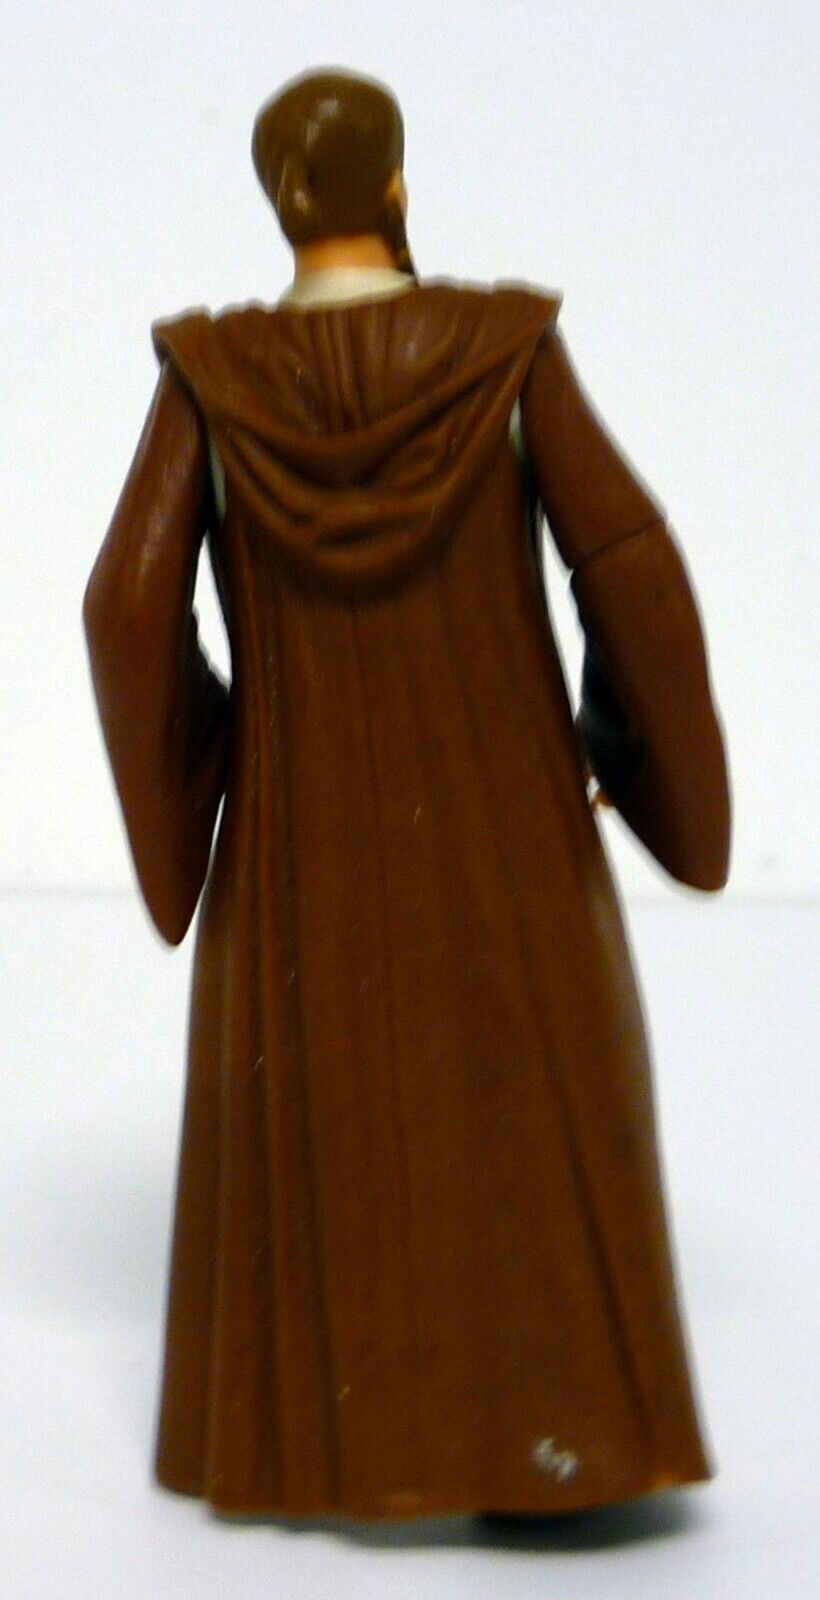 Figurine StarWars : Star Wars Obi-Wan Kenobi Épisode I Action Figurine